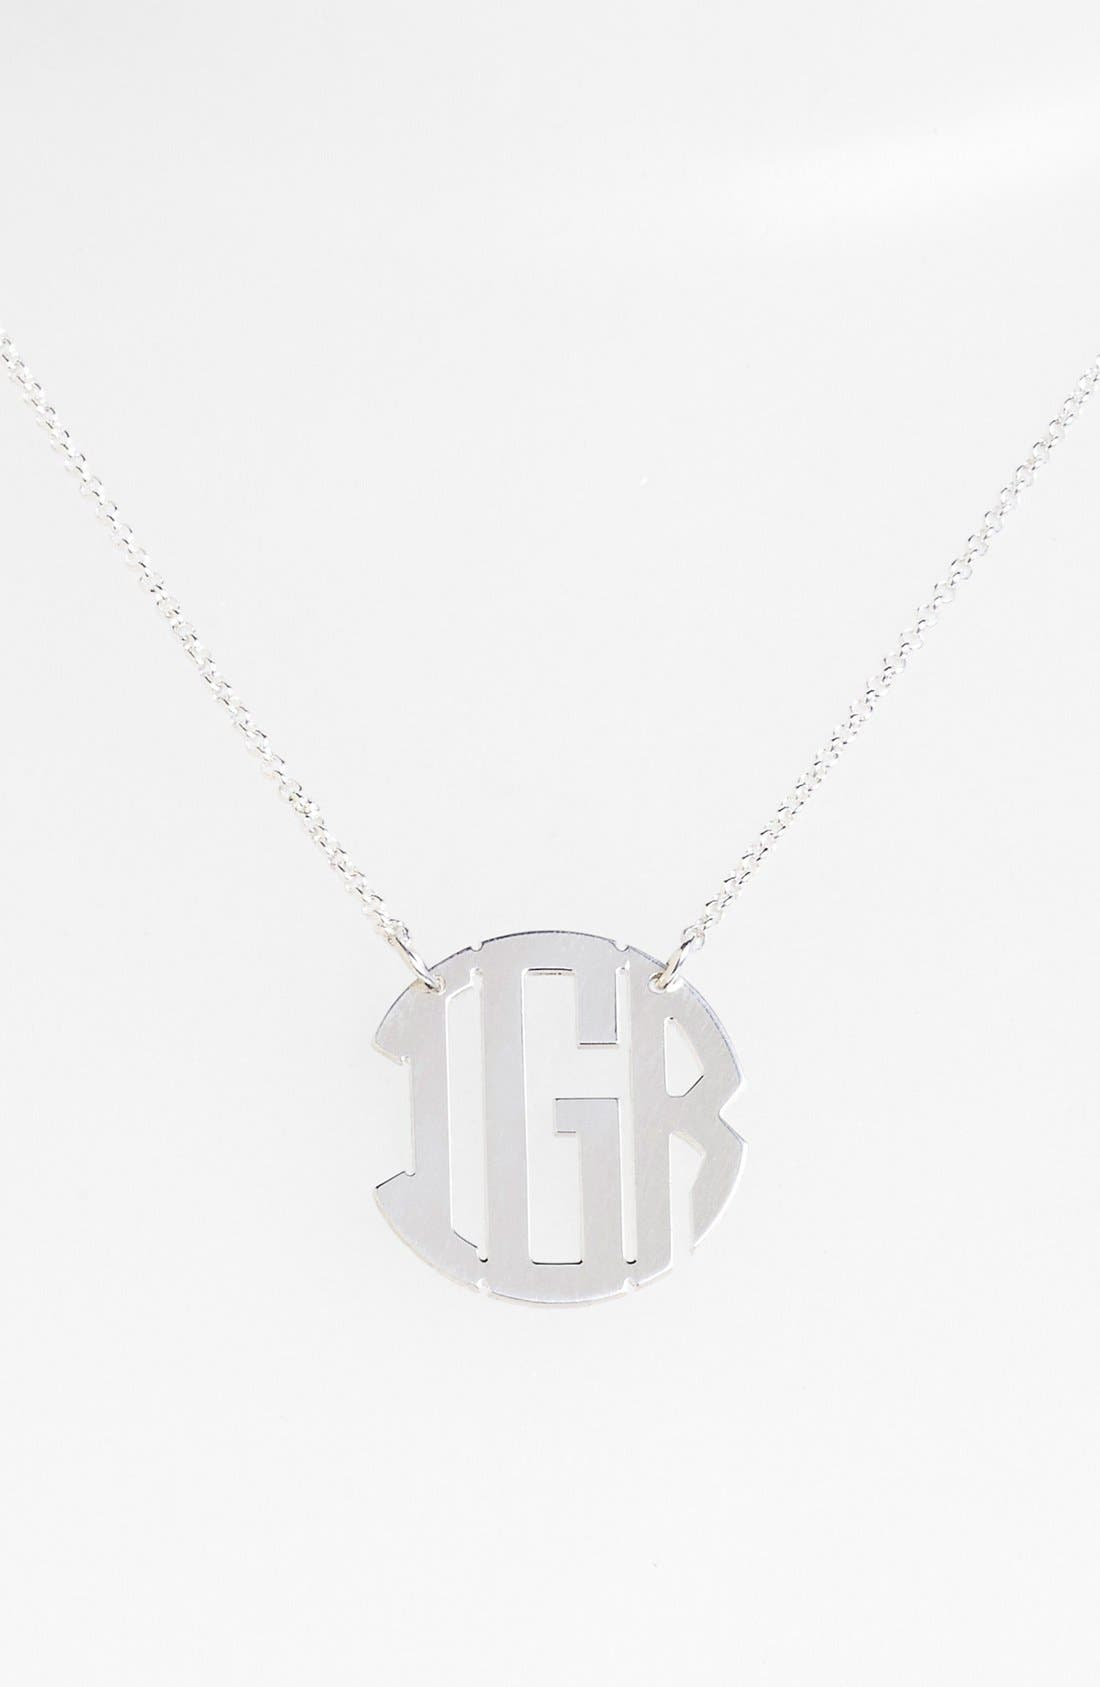 Personalized 3-Initial Block Monogram Necklace,                         Main,                         color, Silver